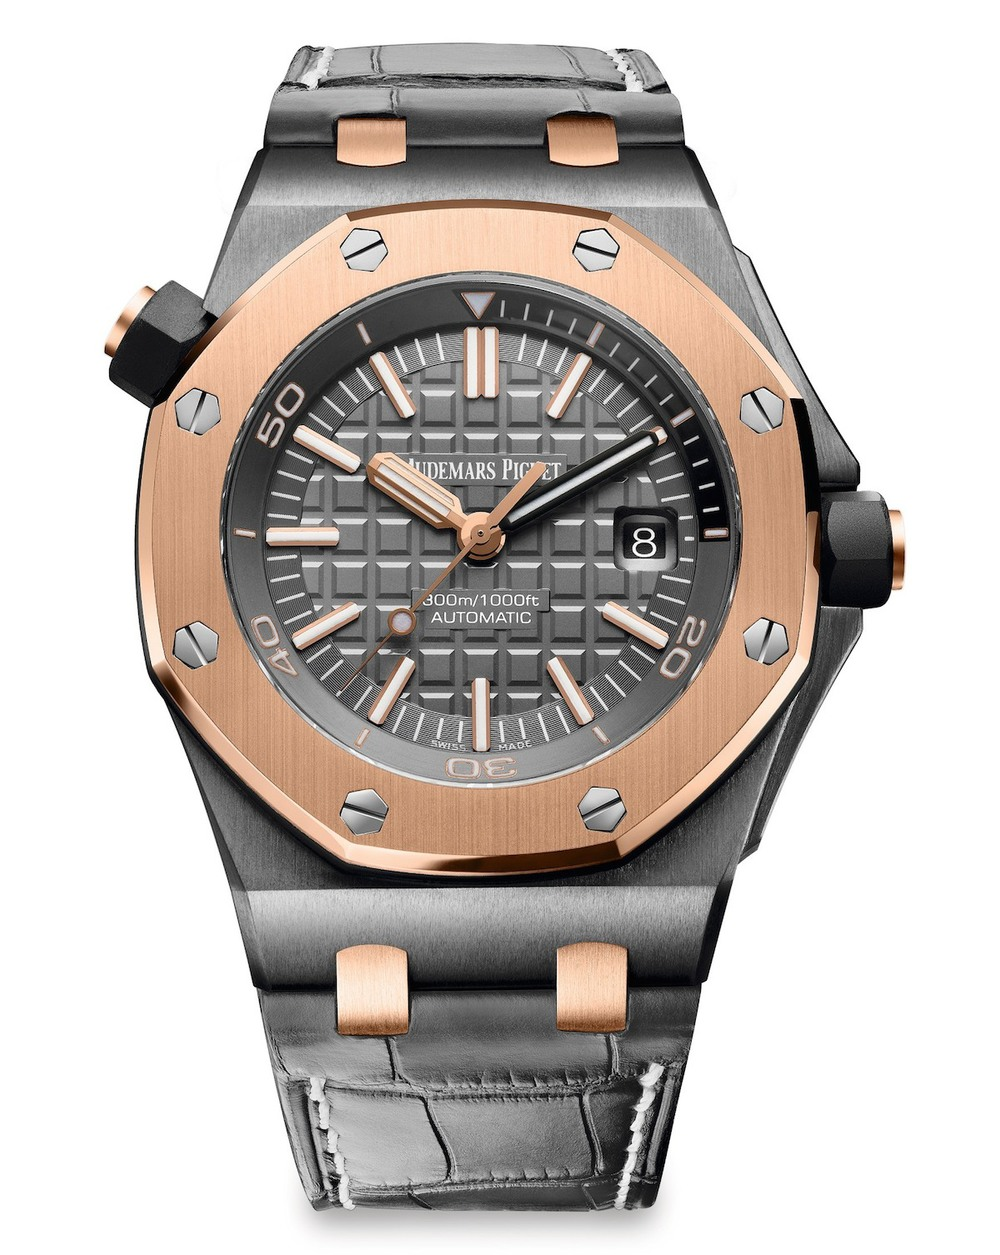 audemars-piguet-royal-oak-offshore-diver-qe-ii-slate-grey-dial-automatic-mens-18-carat-pink-gold-watch-15709trooa005cr01-15709trooa005cr01